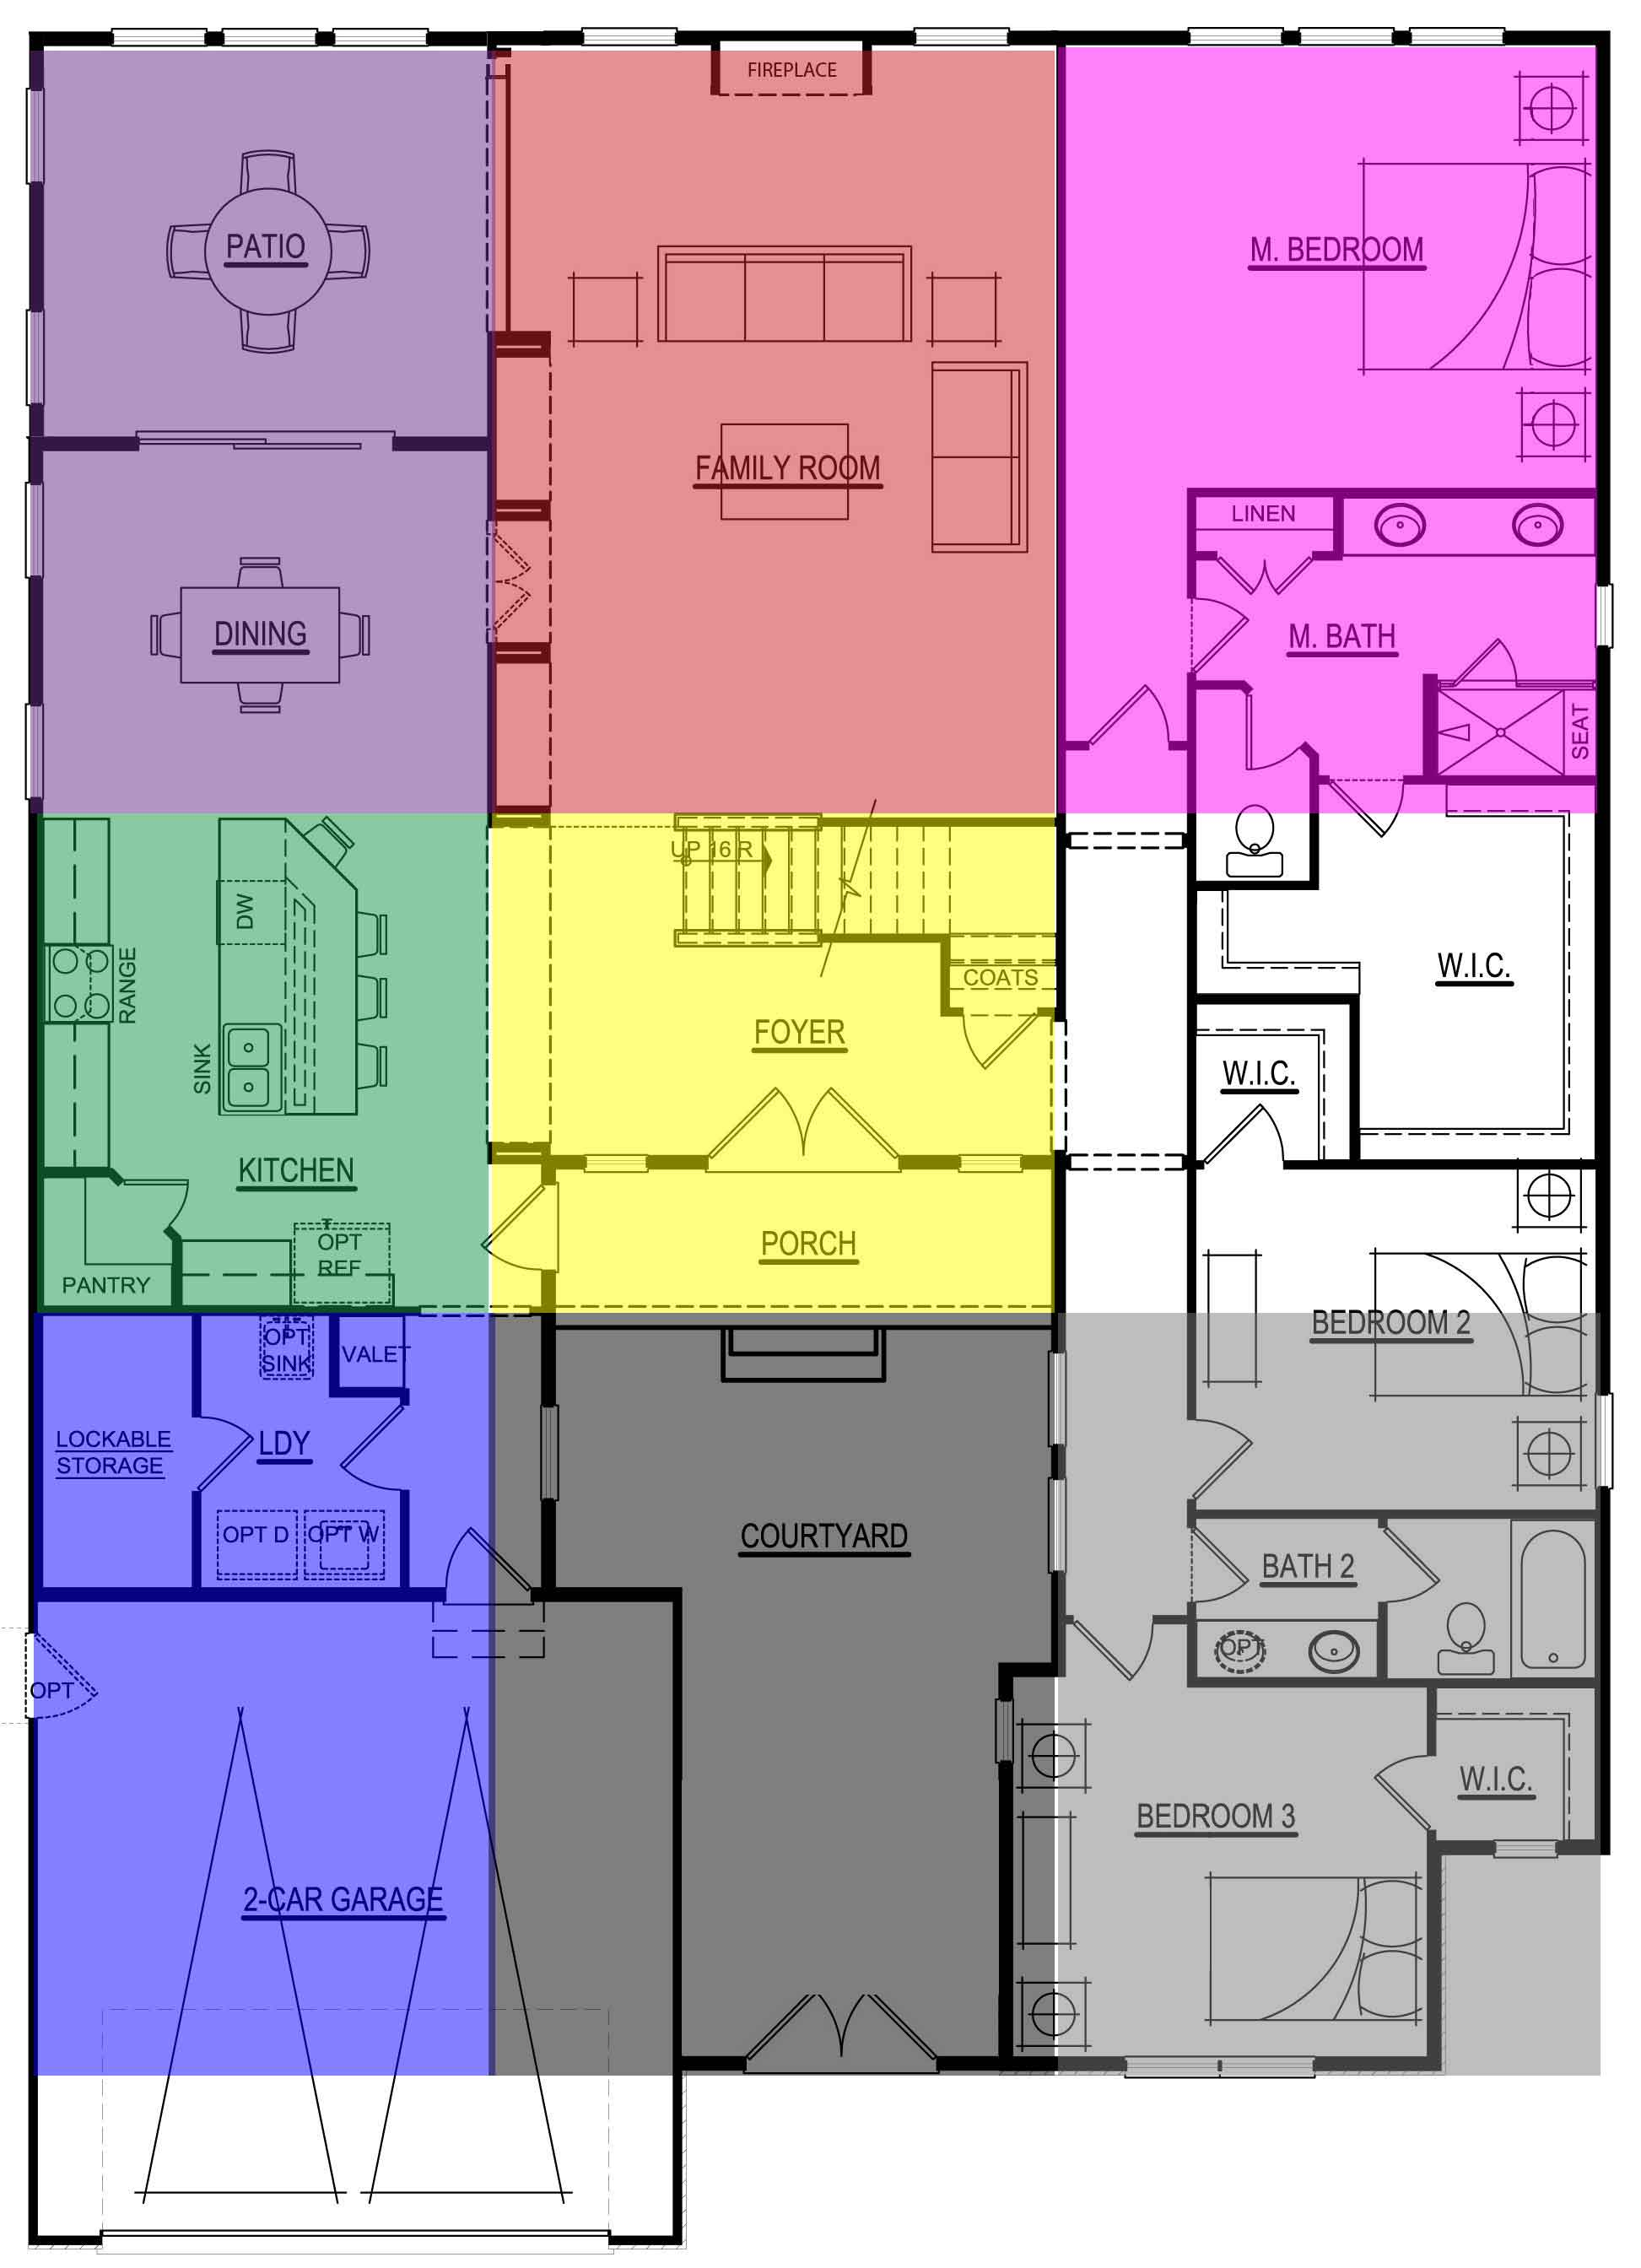 Feng shui compass or bagua ms feng shui Bad floor plans examples